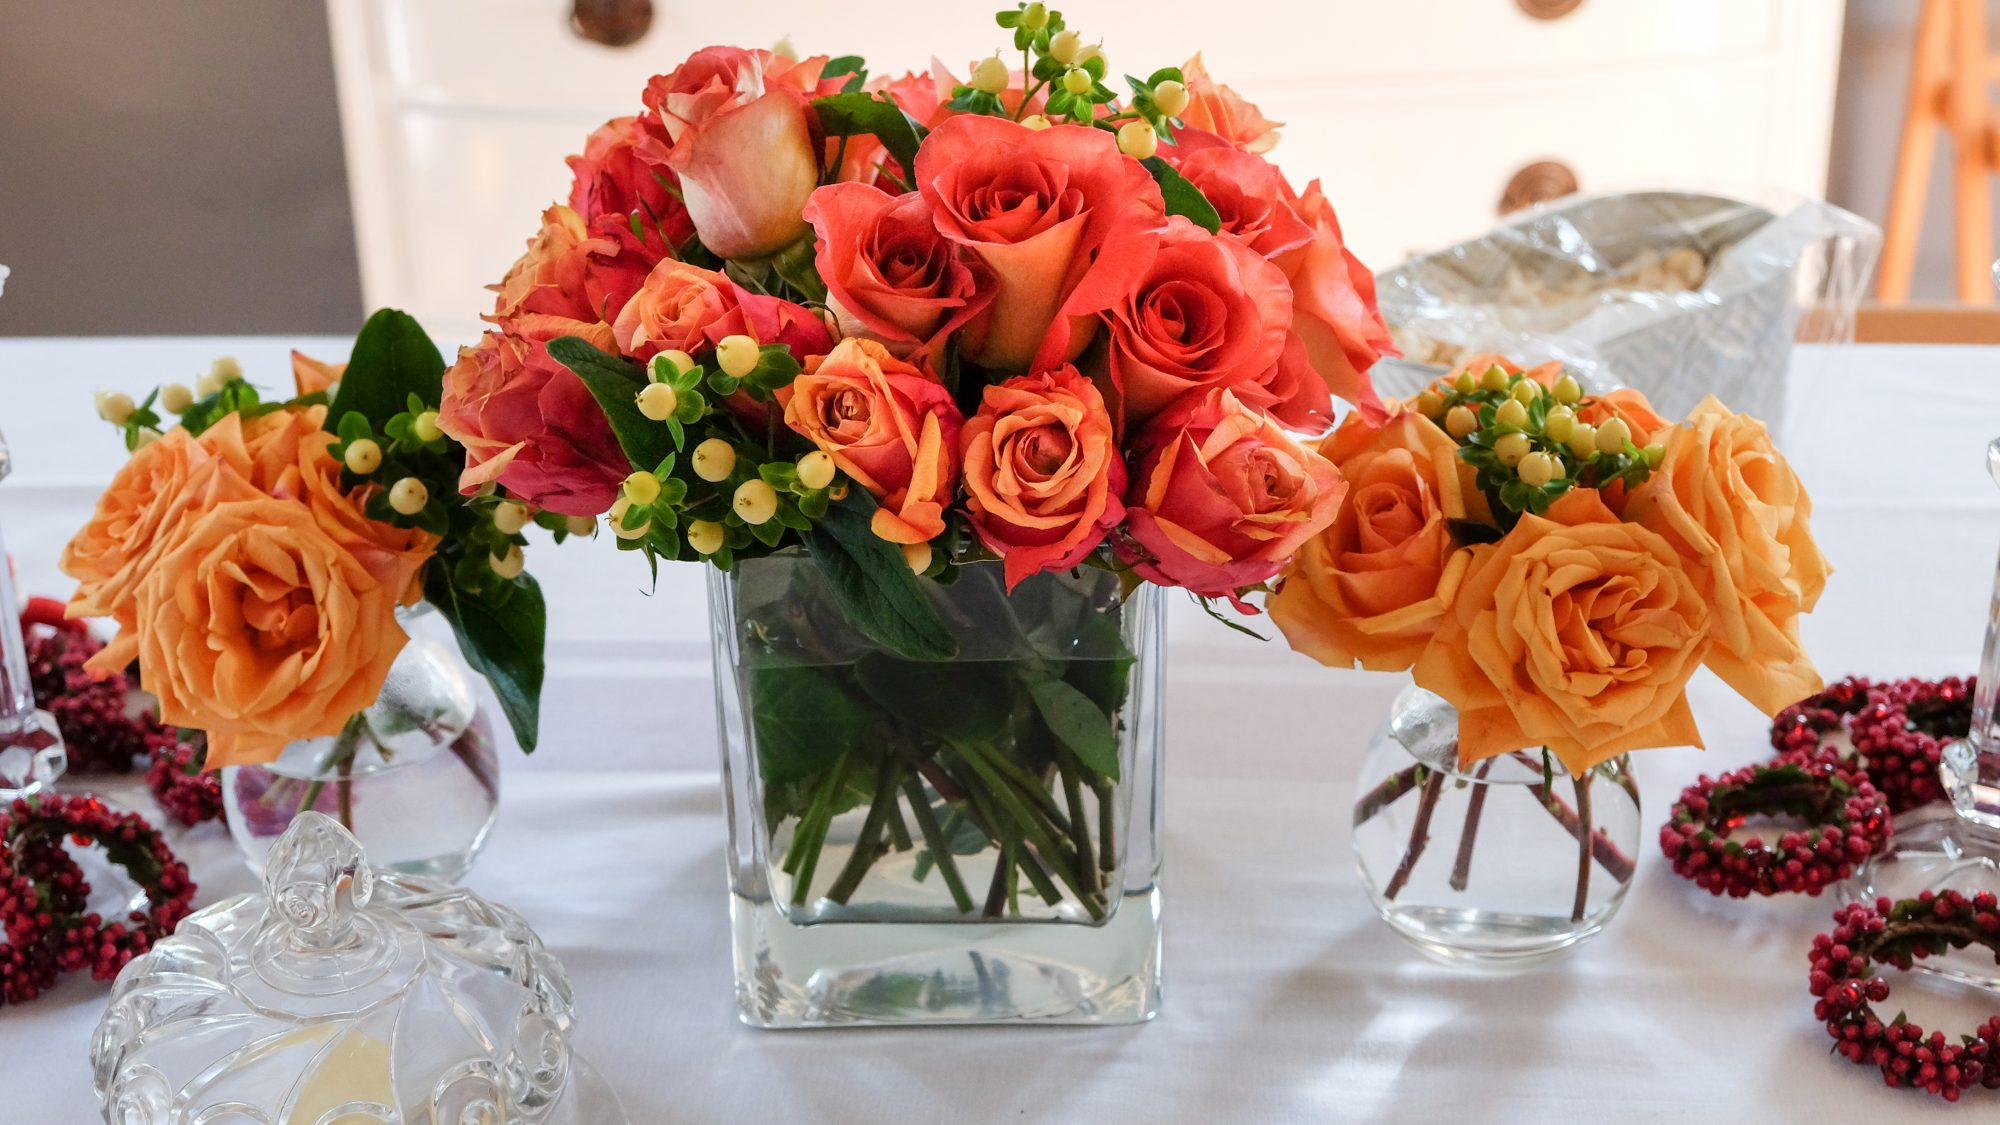 Thanksgiving flower arrangements ideas - Thanksgiving flowers with roses in vase